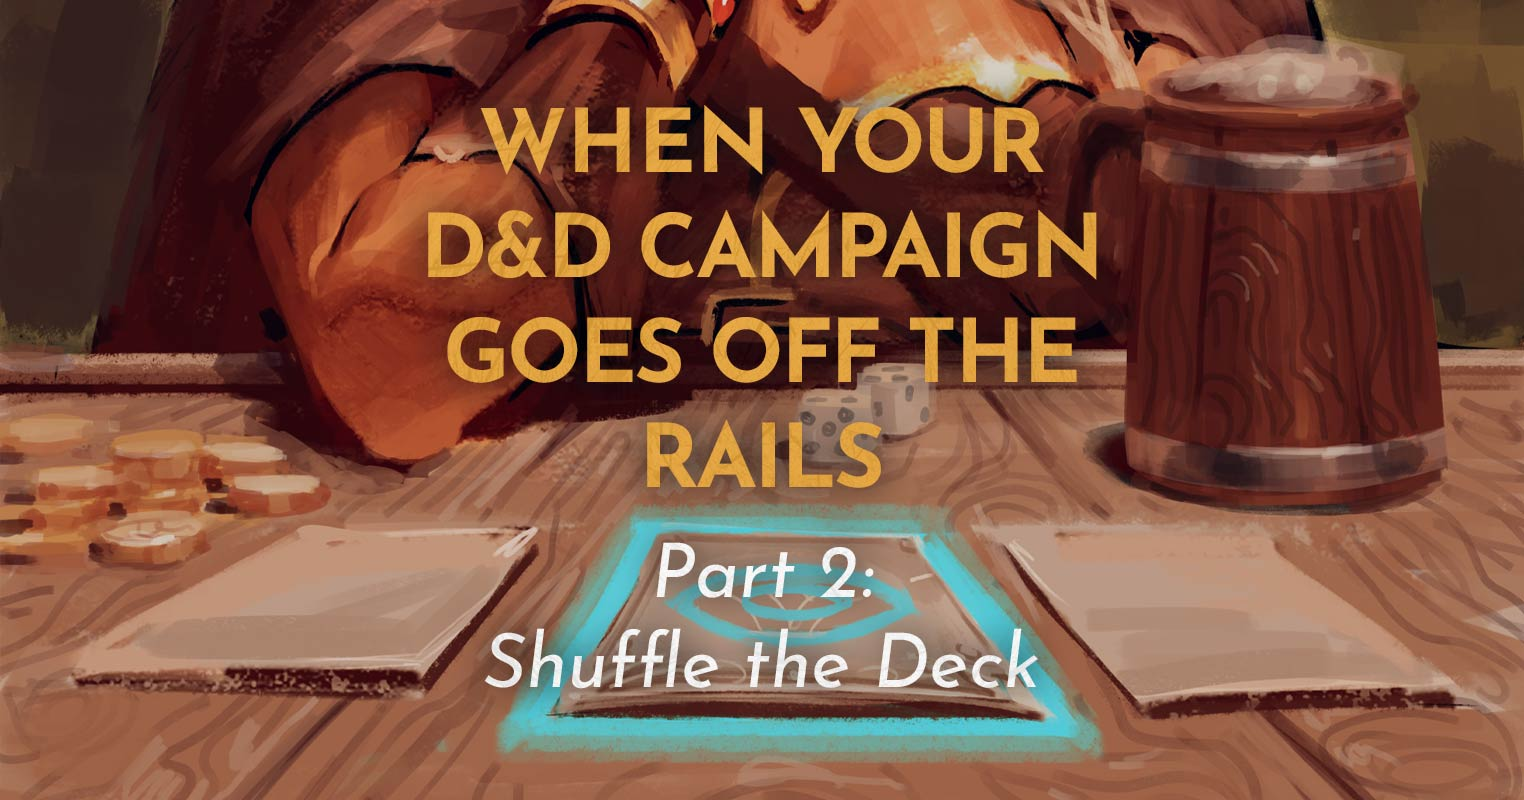 Part 2: Shuffle the Deck